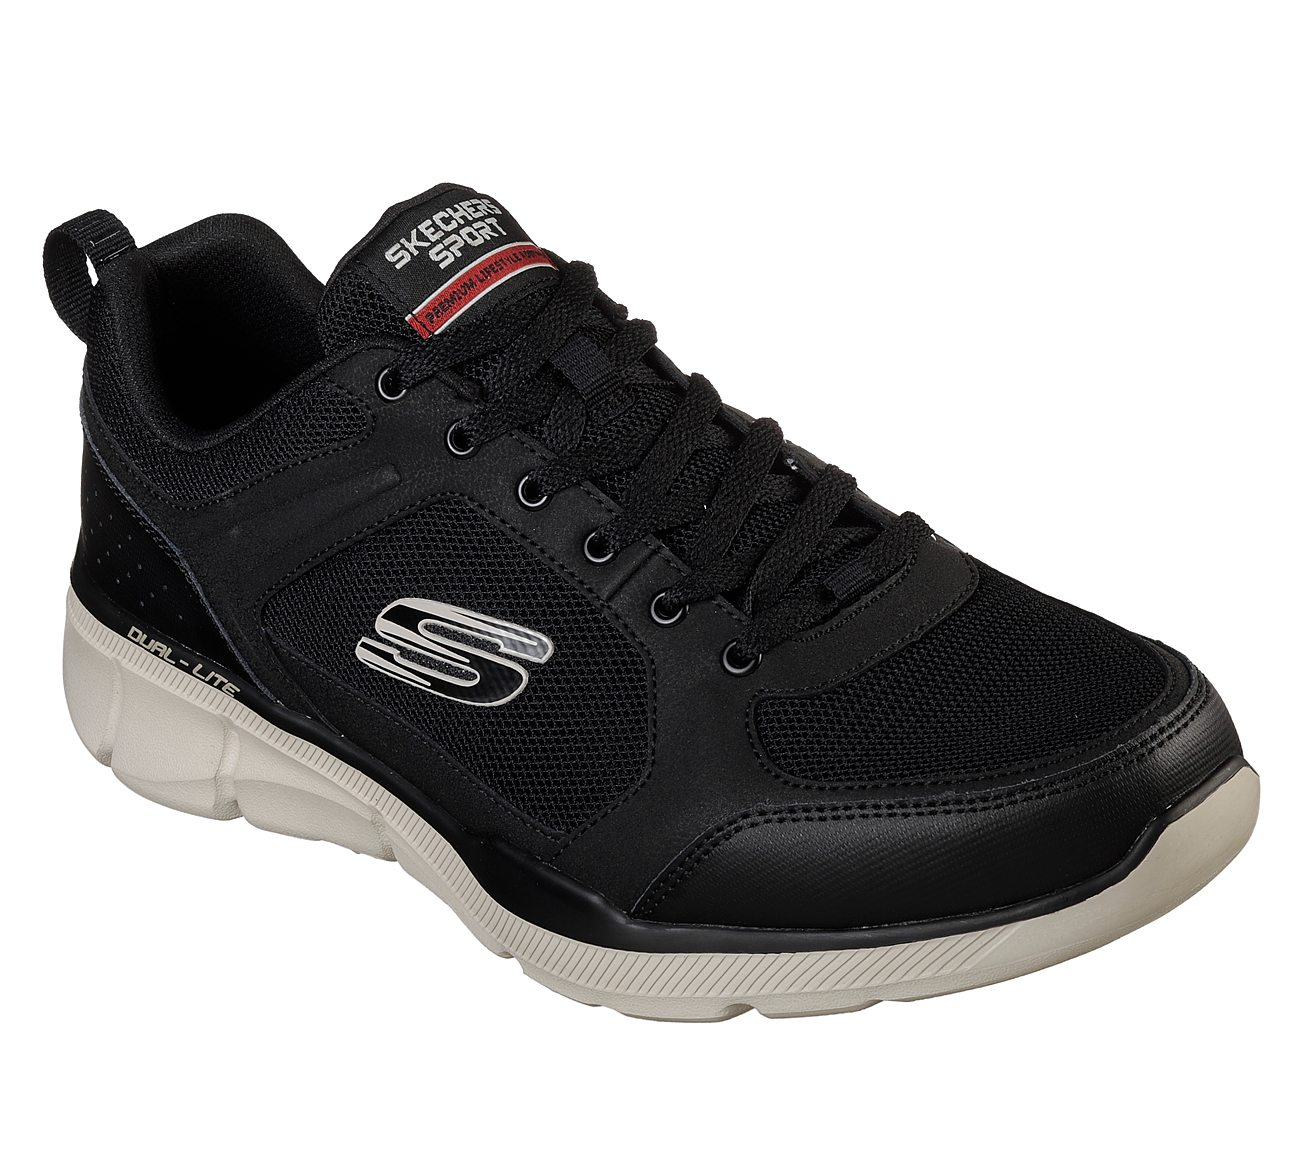 Action Leather Shoes For Men